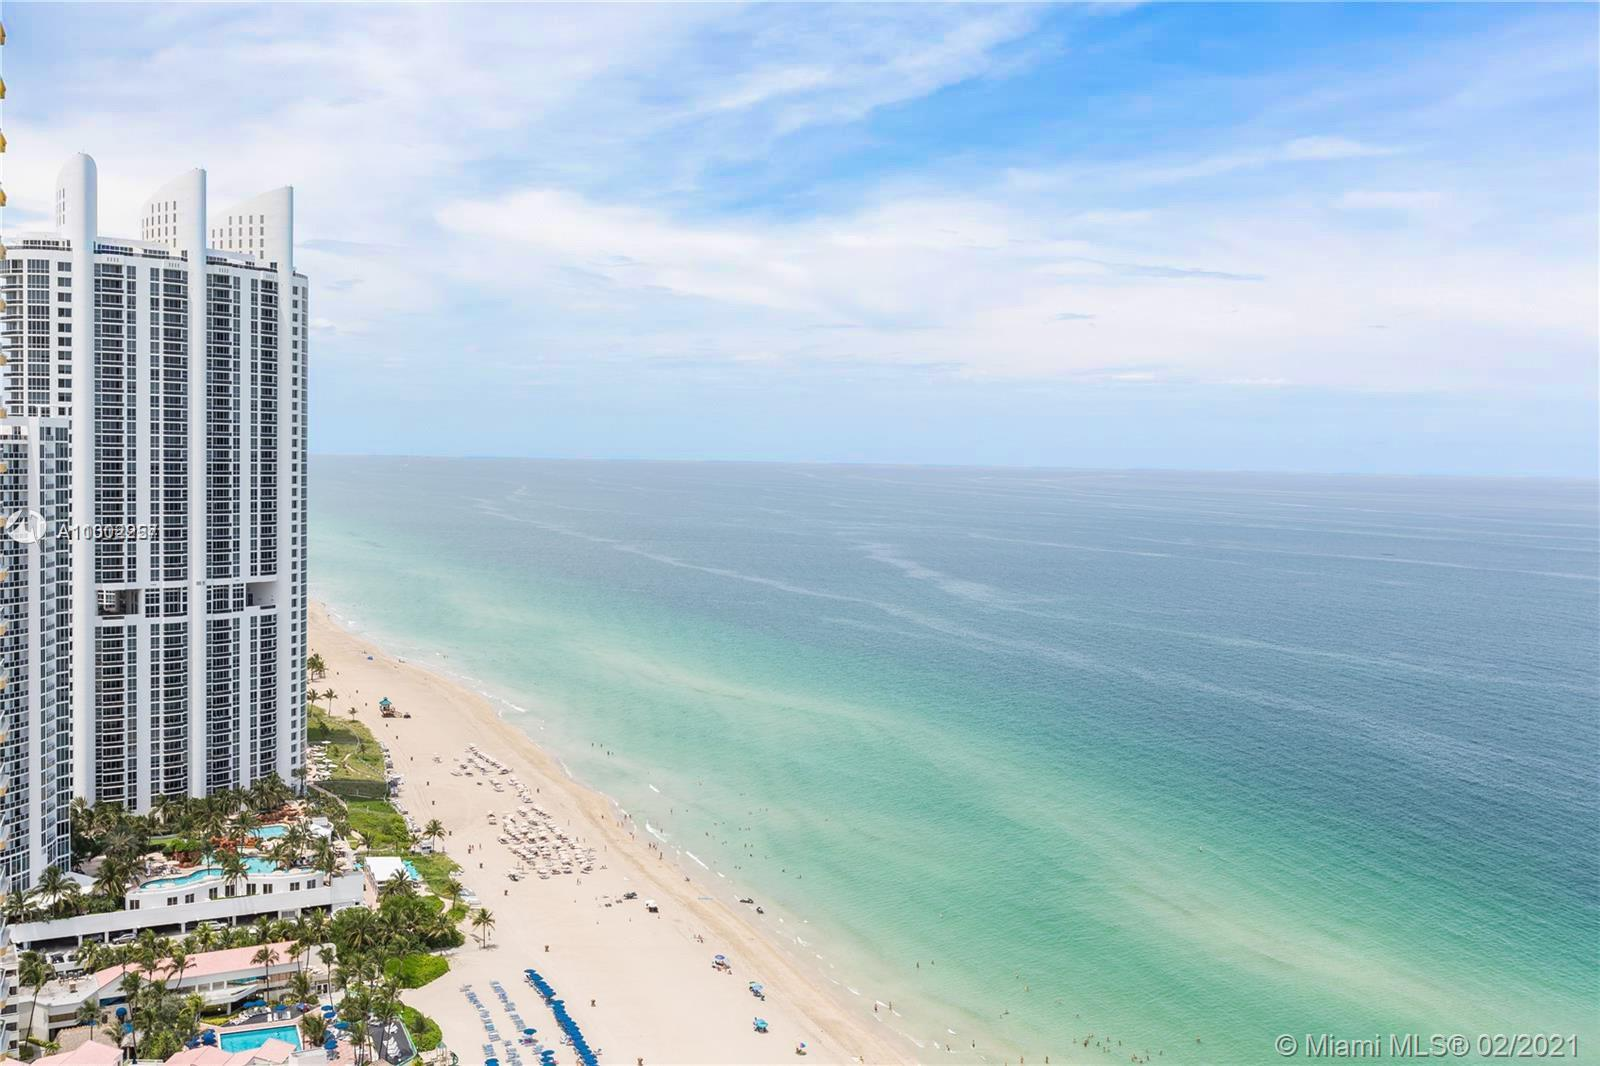 17749 Collins Ave, Unit #2901 Luxury Real Estate